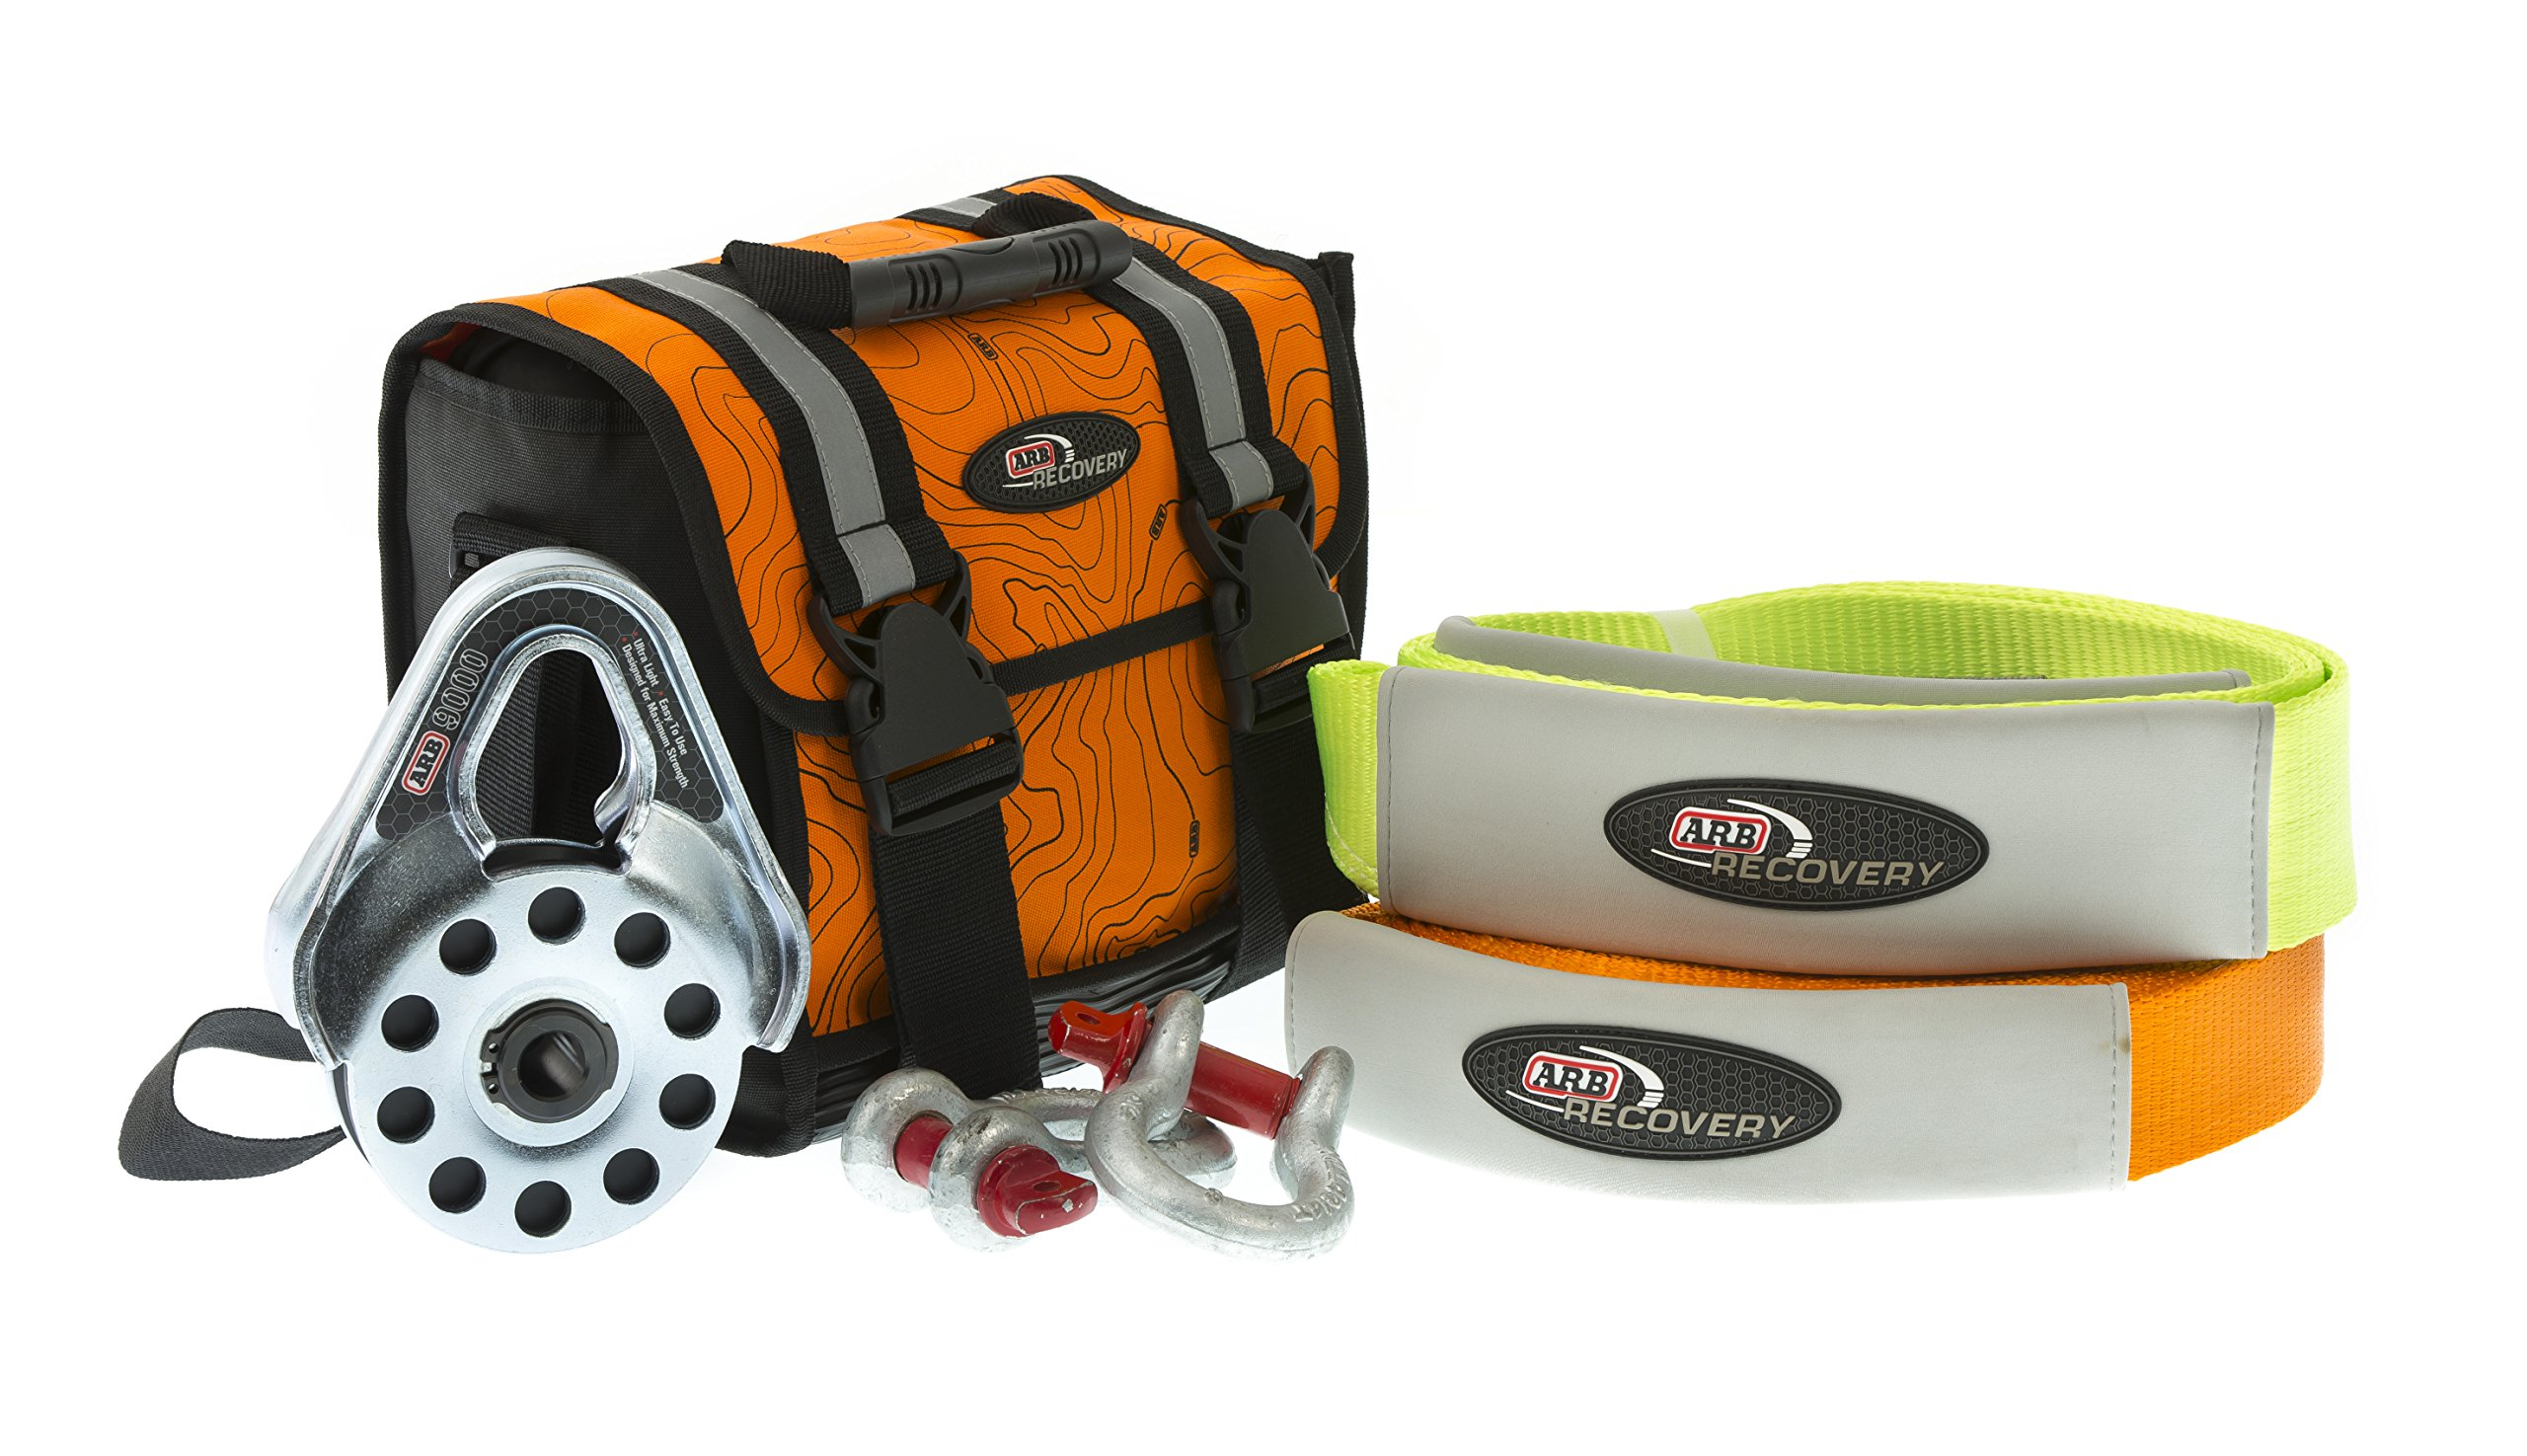 ARB RK11 Accessories Essentials Recovery Kit by ARB